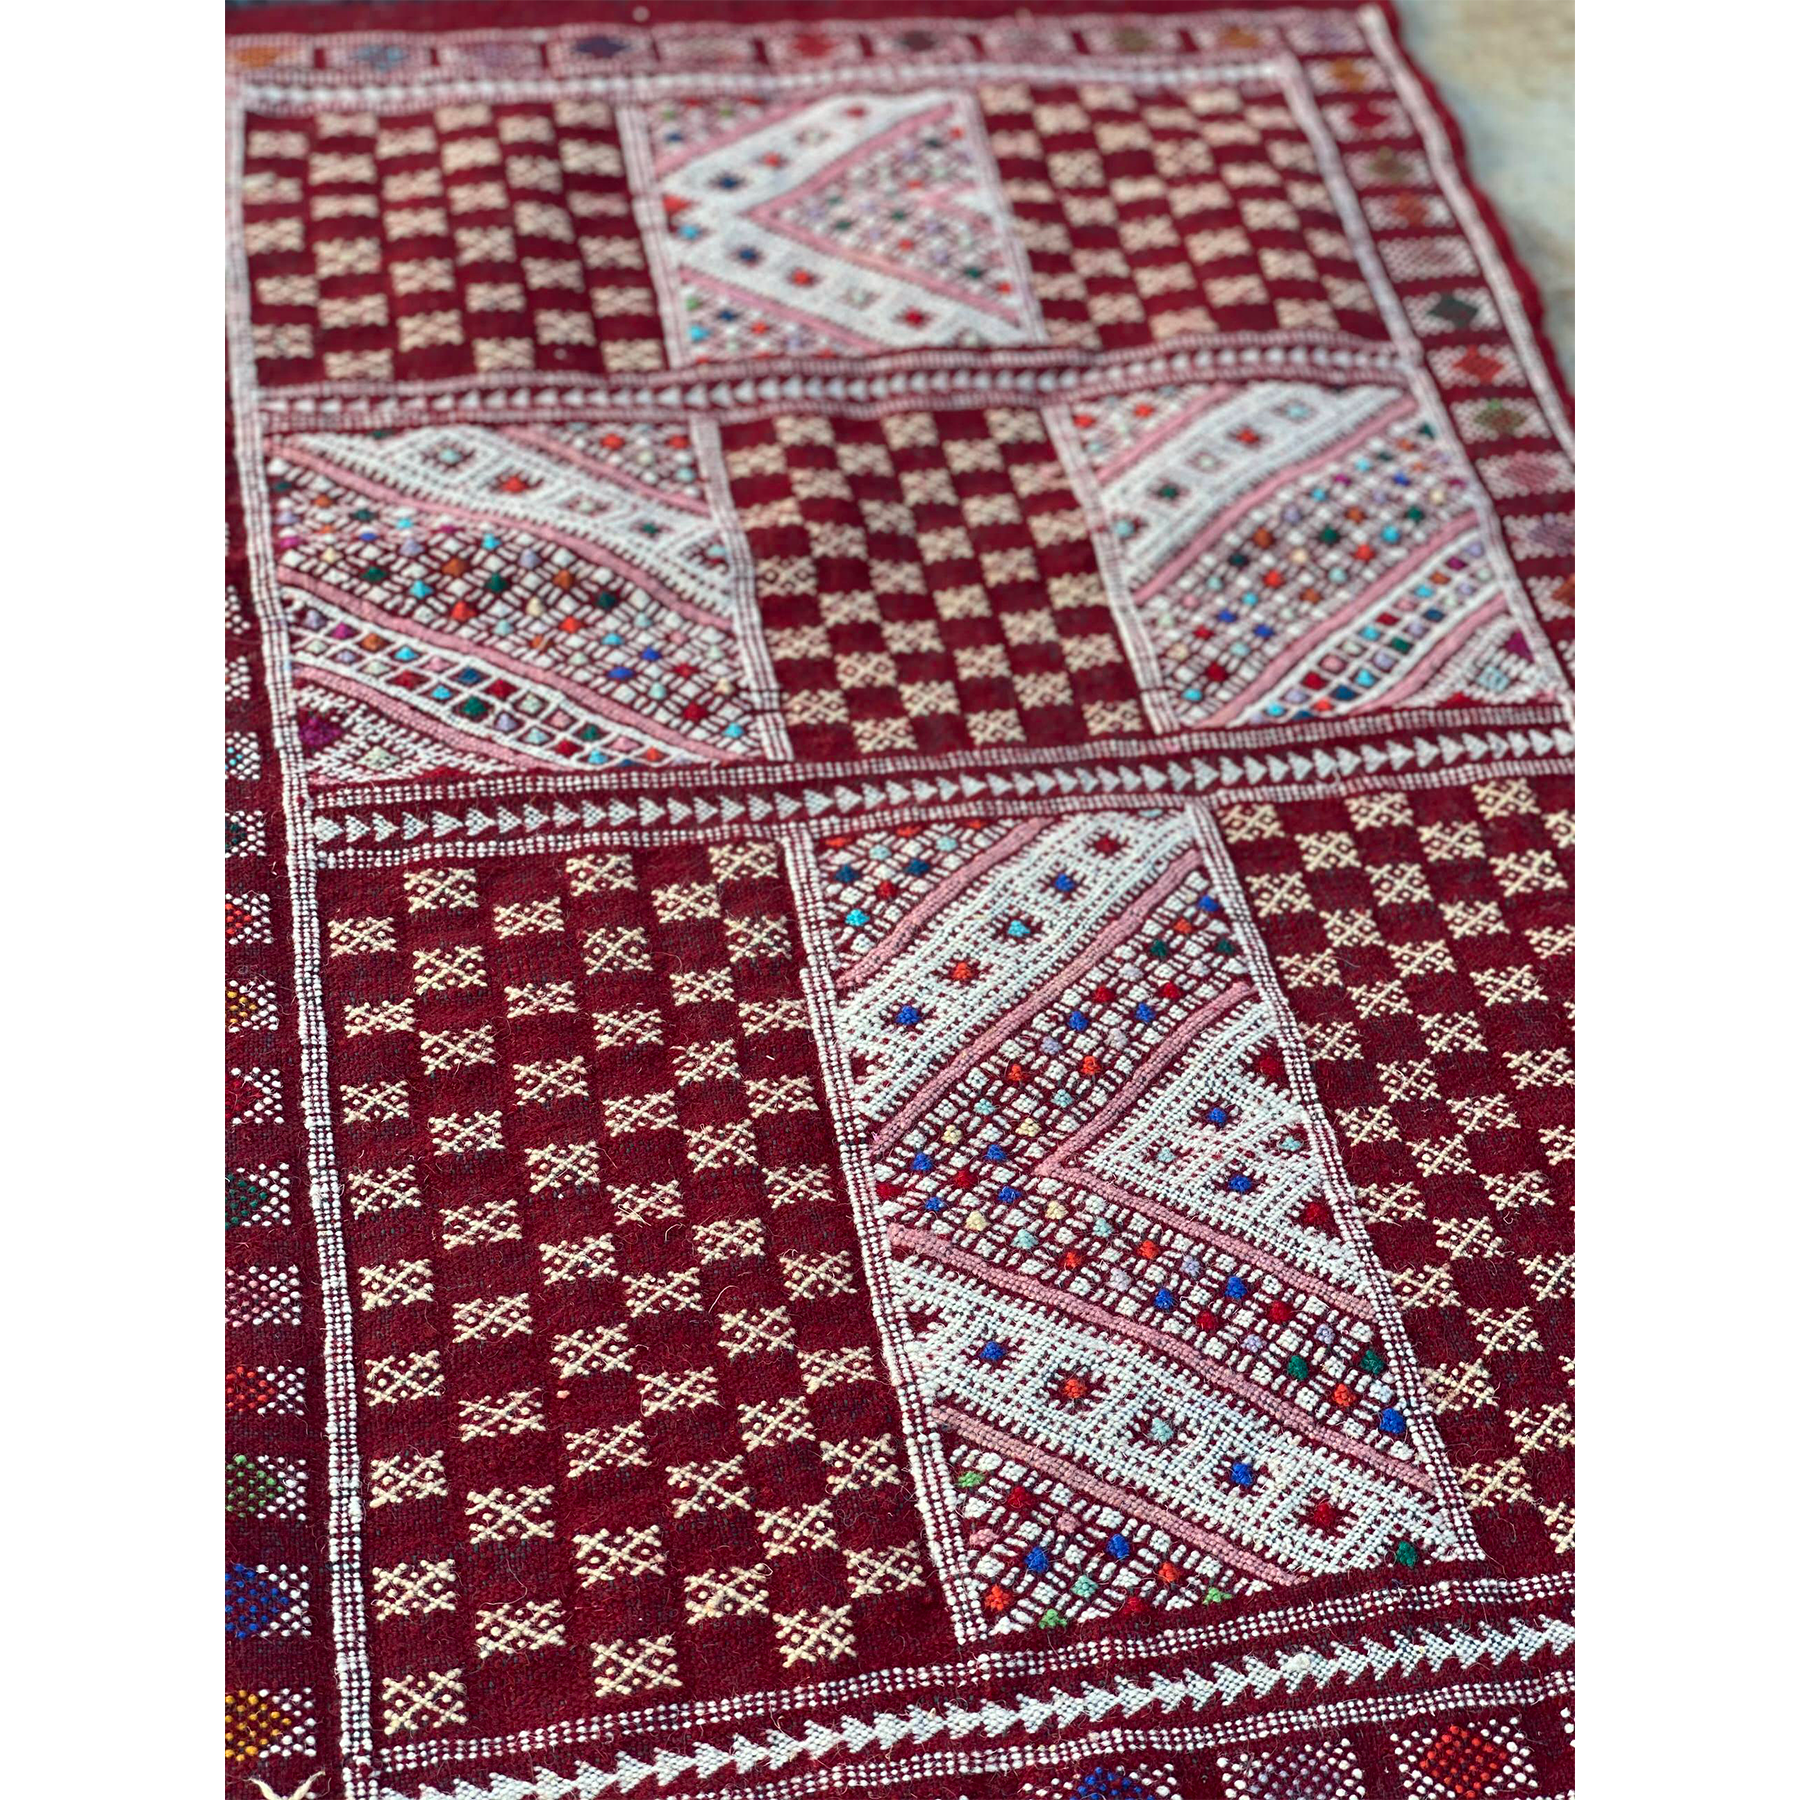 Traditional Moroccan throw rug with geometric pattern design - Kantara | Moroccan Rugs